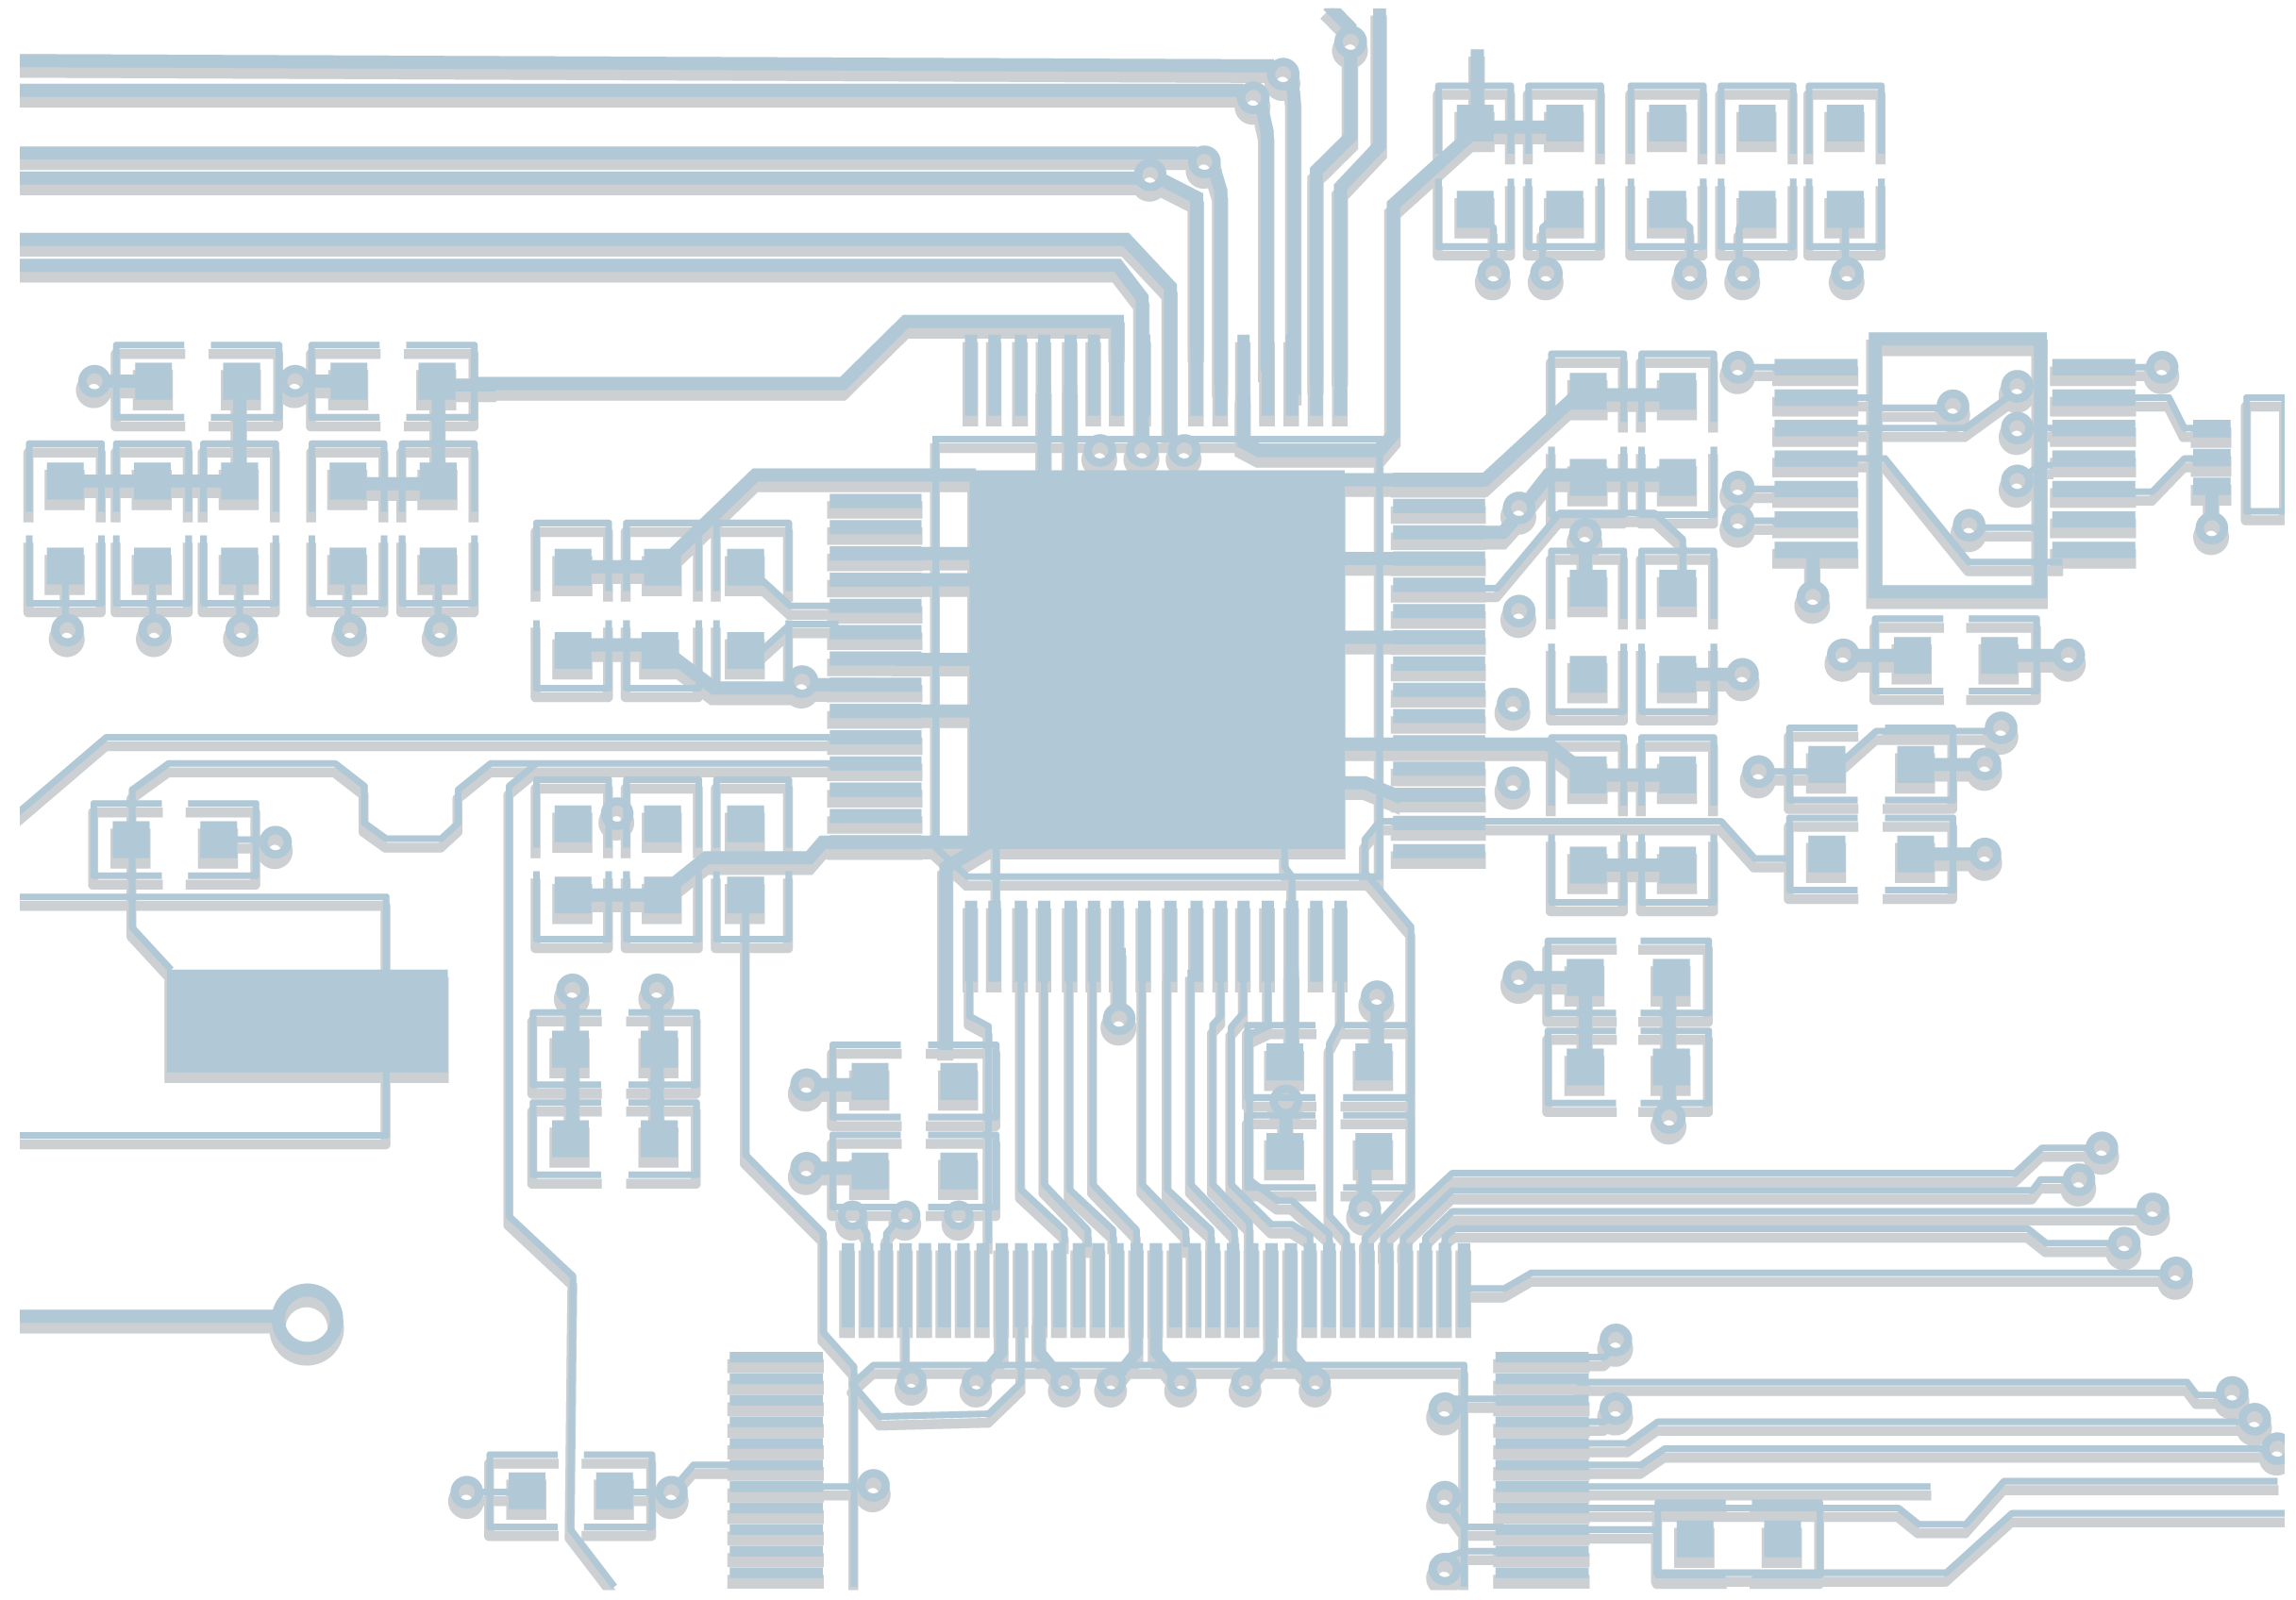 Chips transparent circuit. Integrated electronic diagram printed